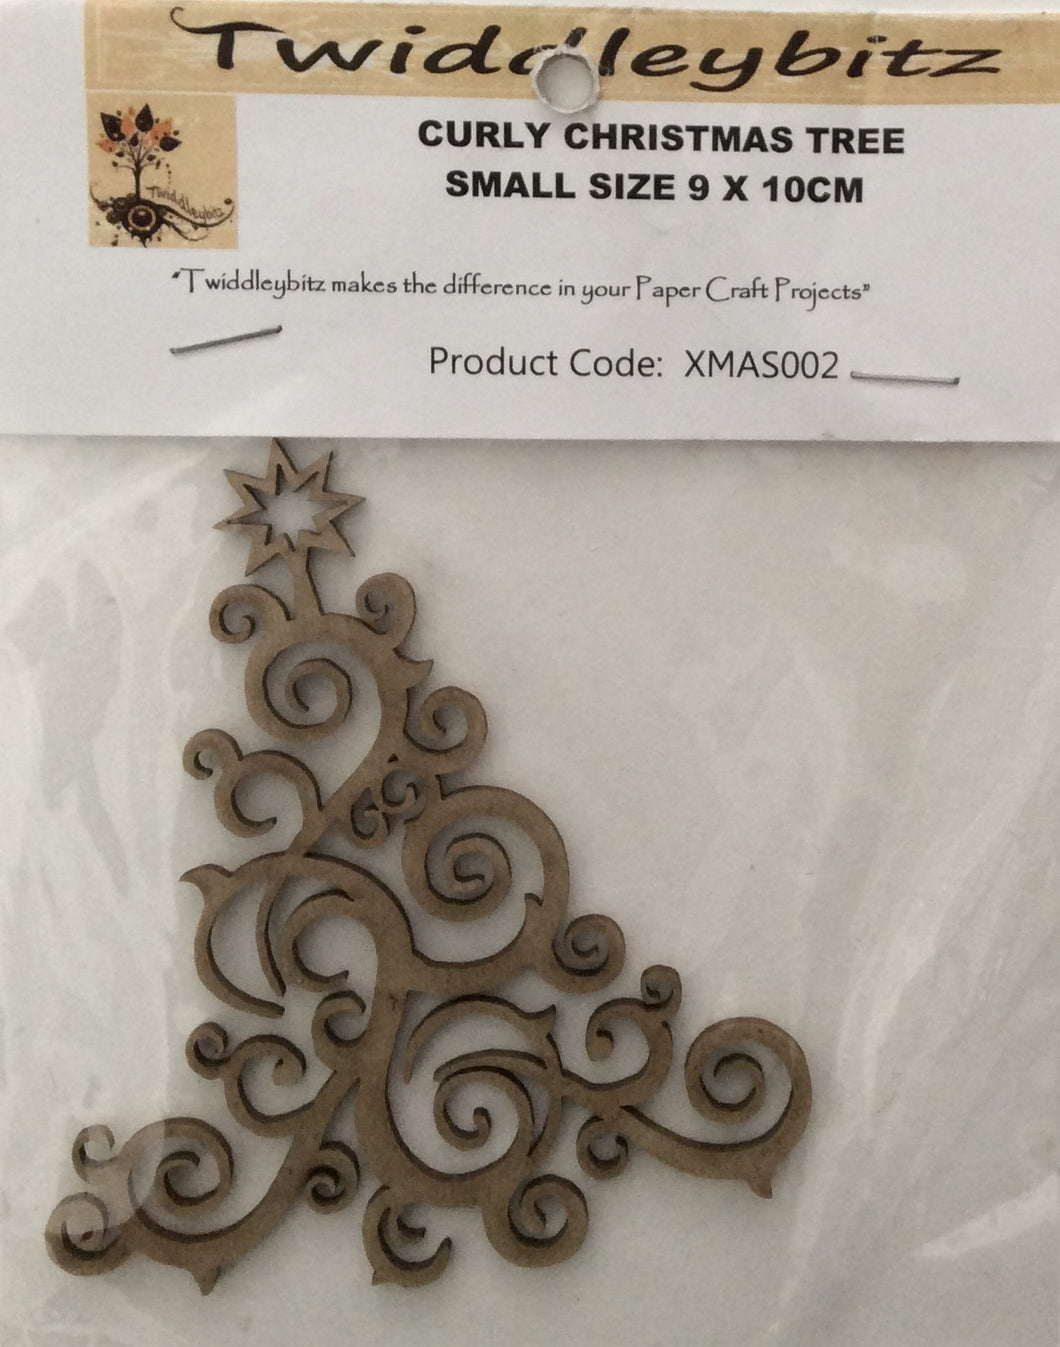 Twiddleybitz Small Curly Christmas Tree